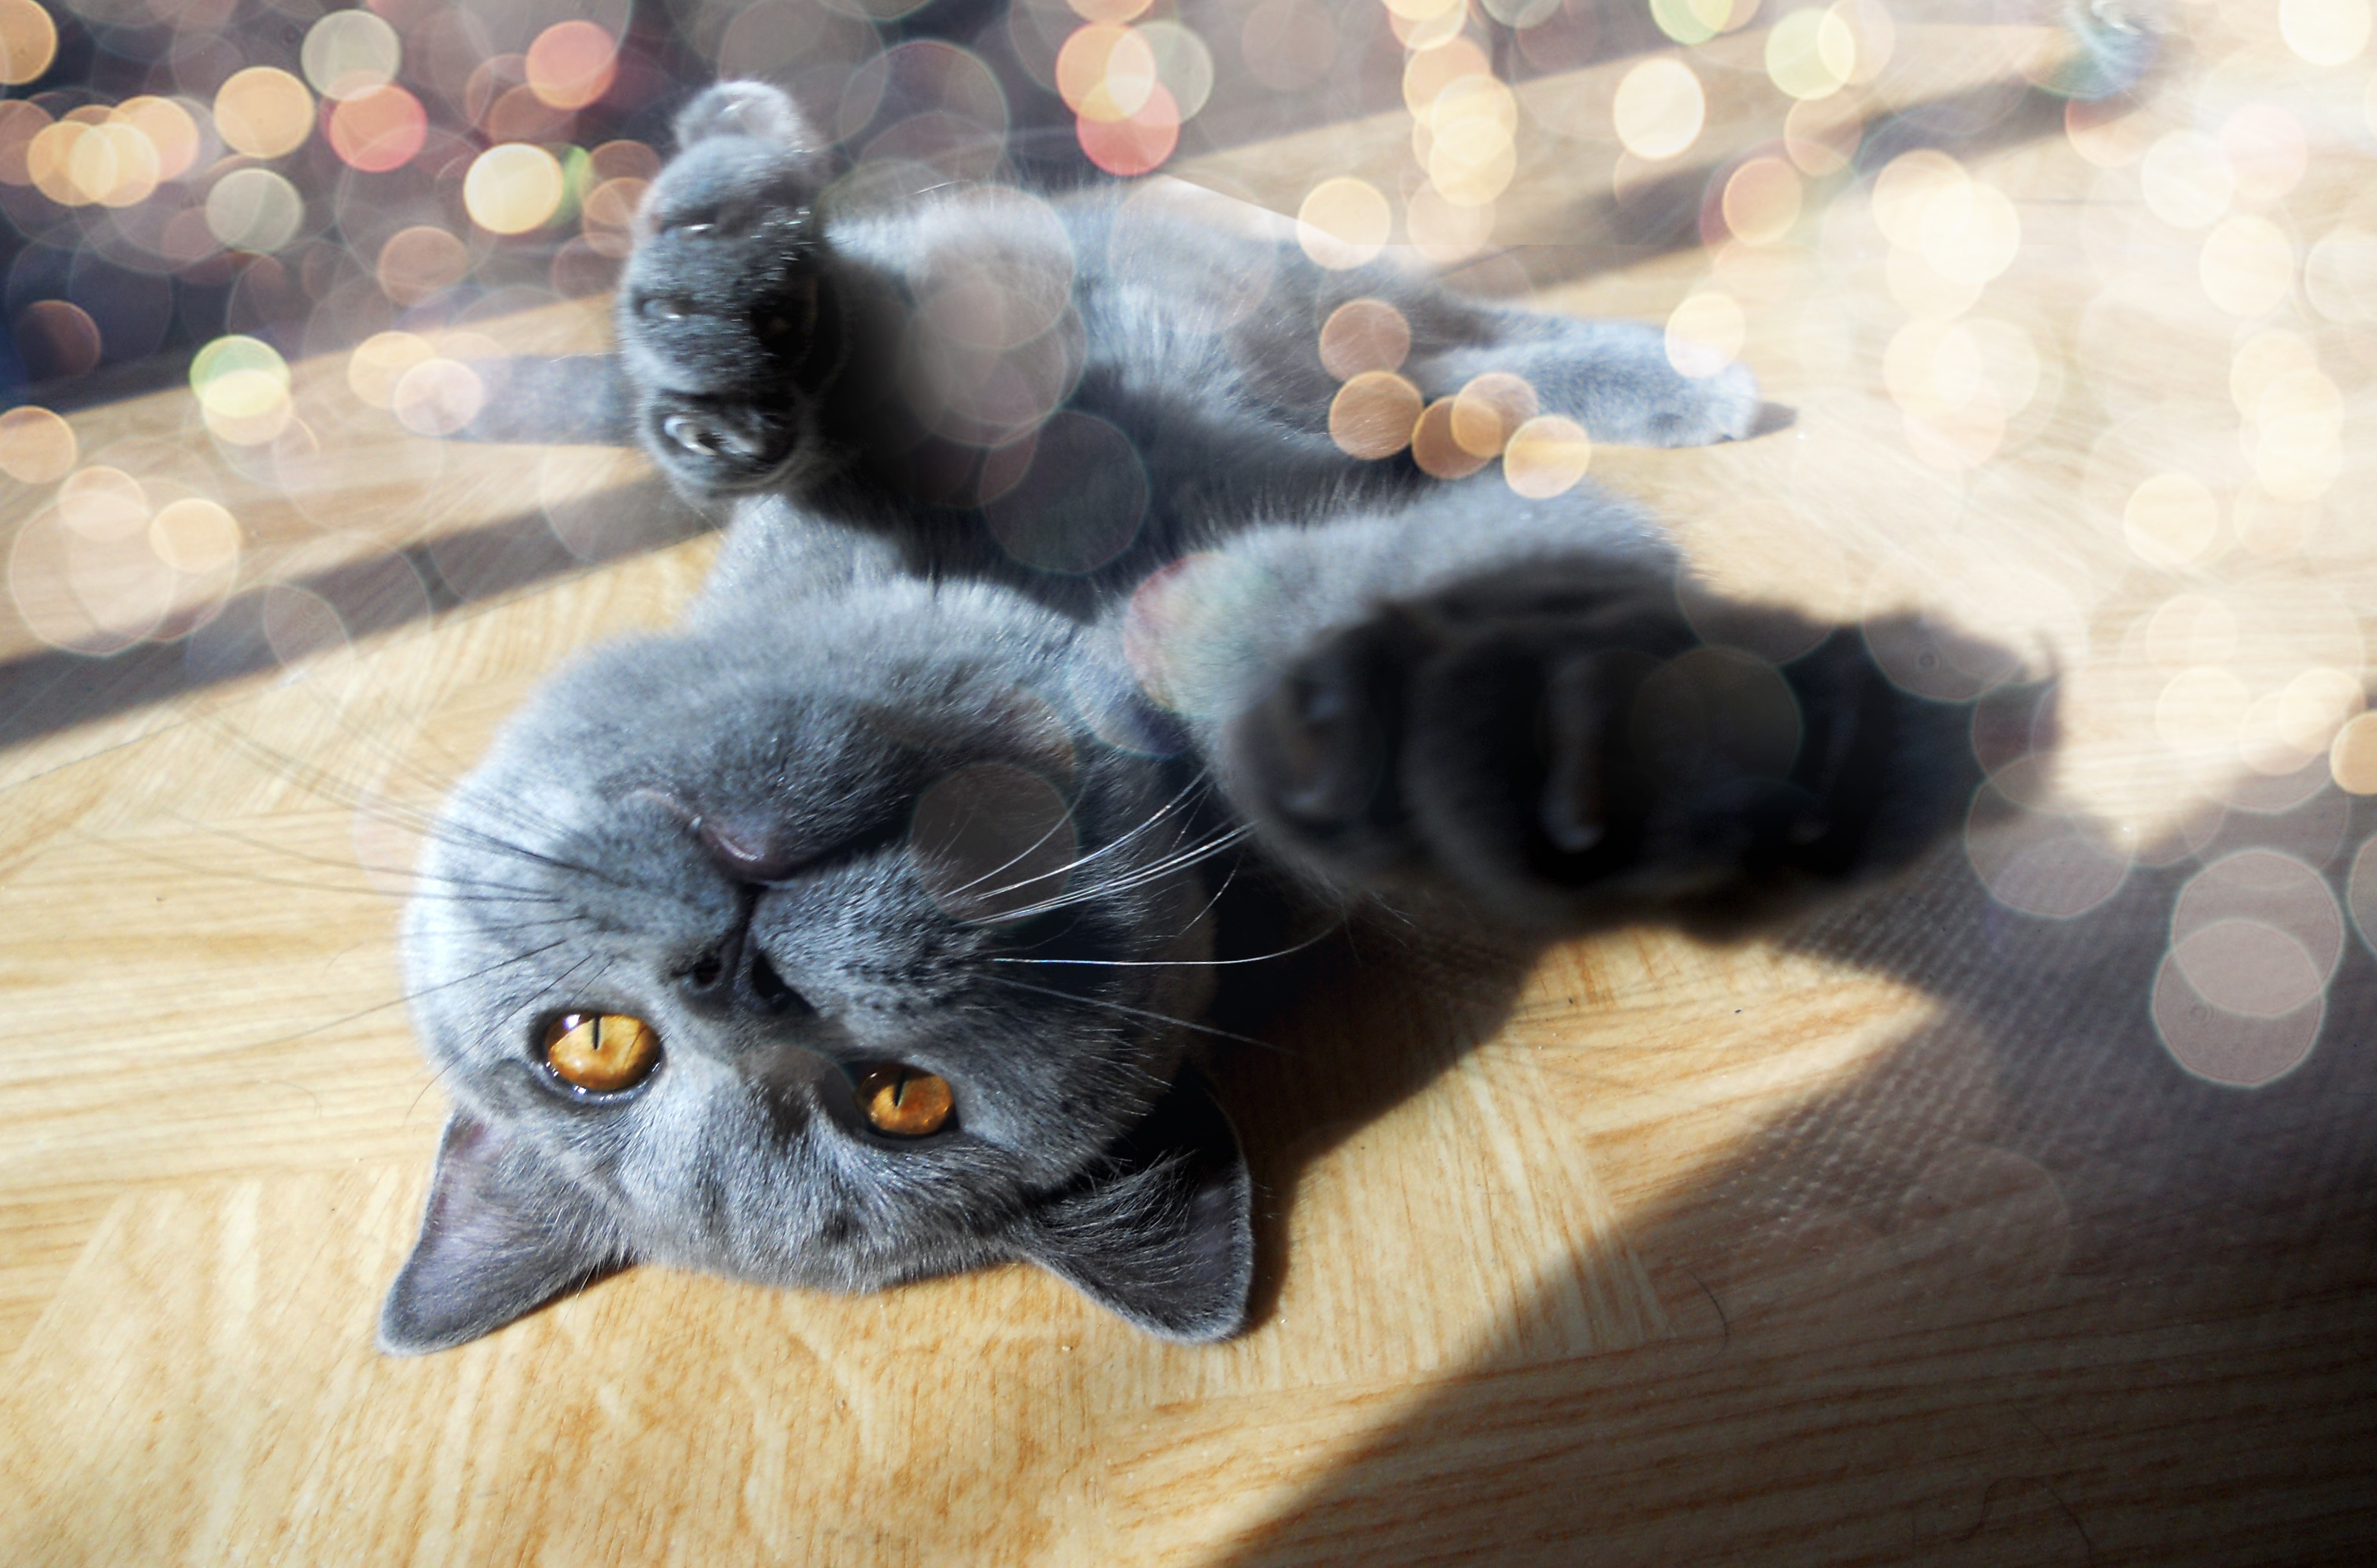 147307 download wallpaper Animals, Cat, Muzzle, Paw, Playful, Shine, Light, Glare screensavers and pictures for free